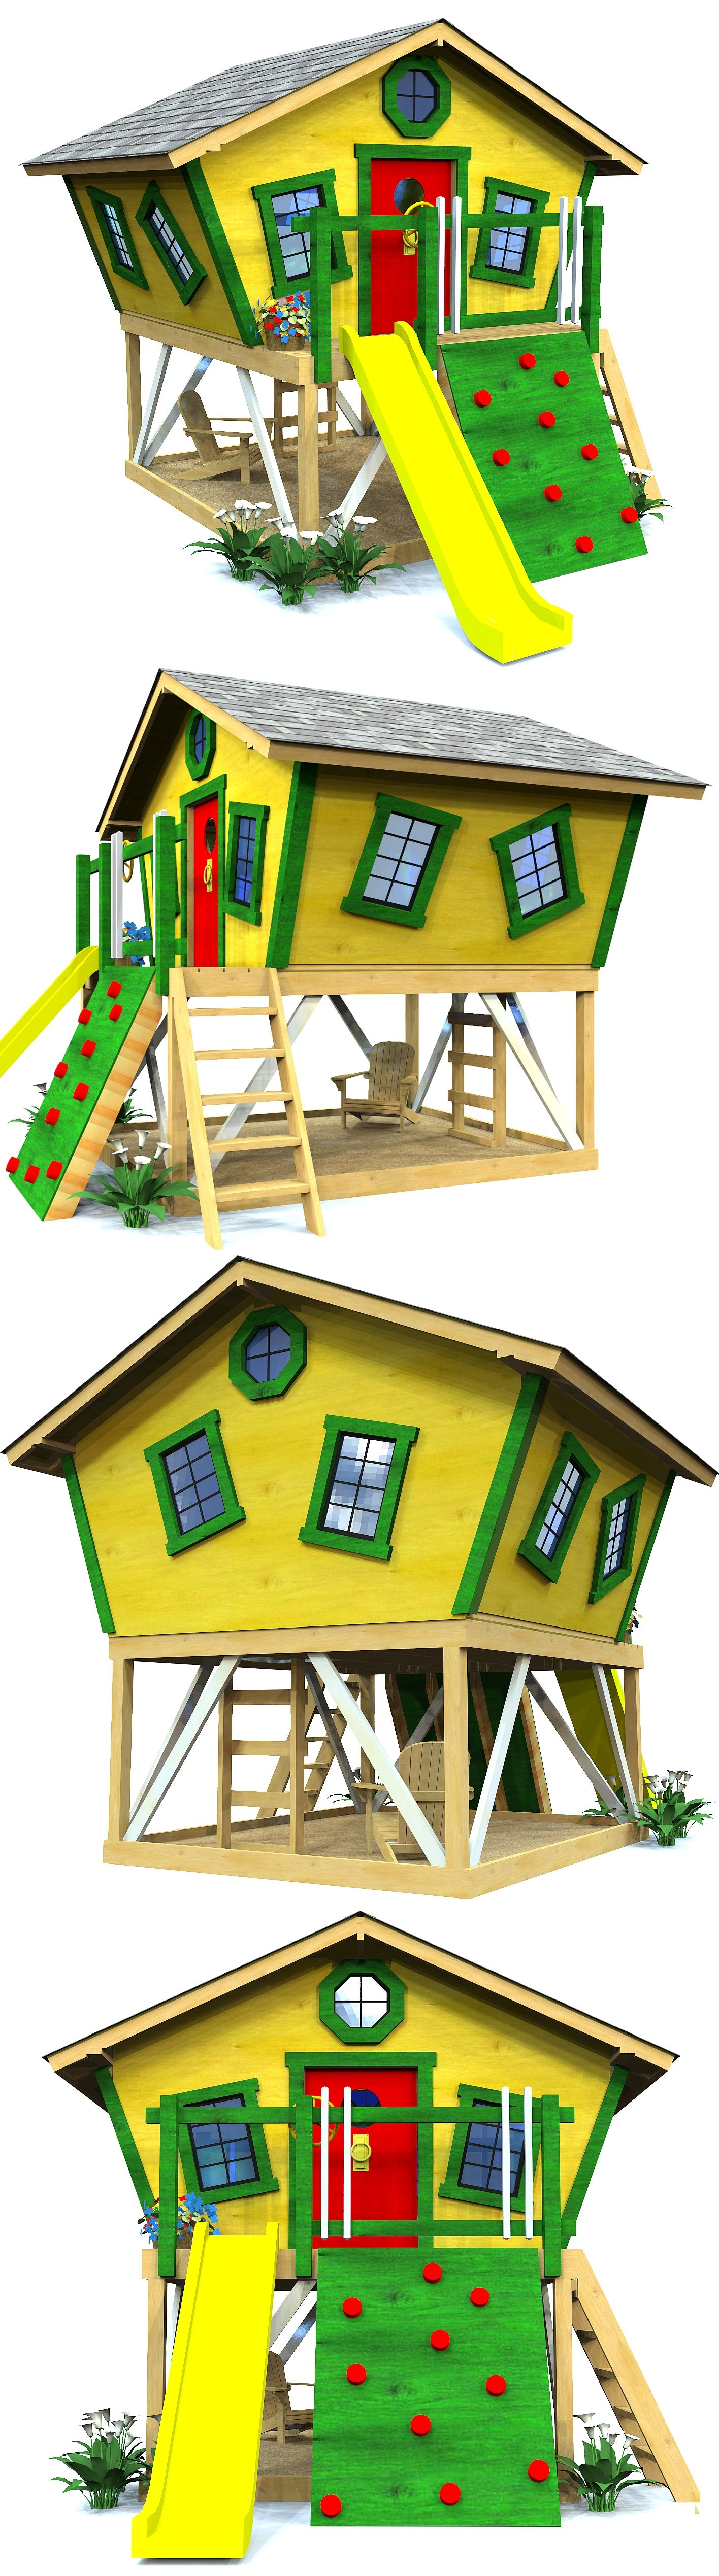 Slanted Shack Playhouse Plan | Playhouses, Front porches and Porch